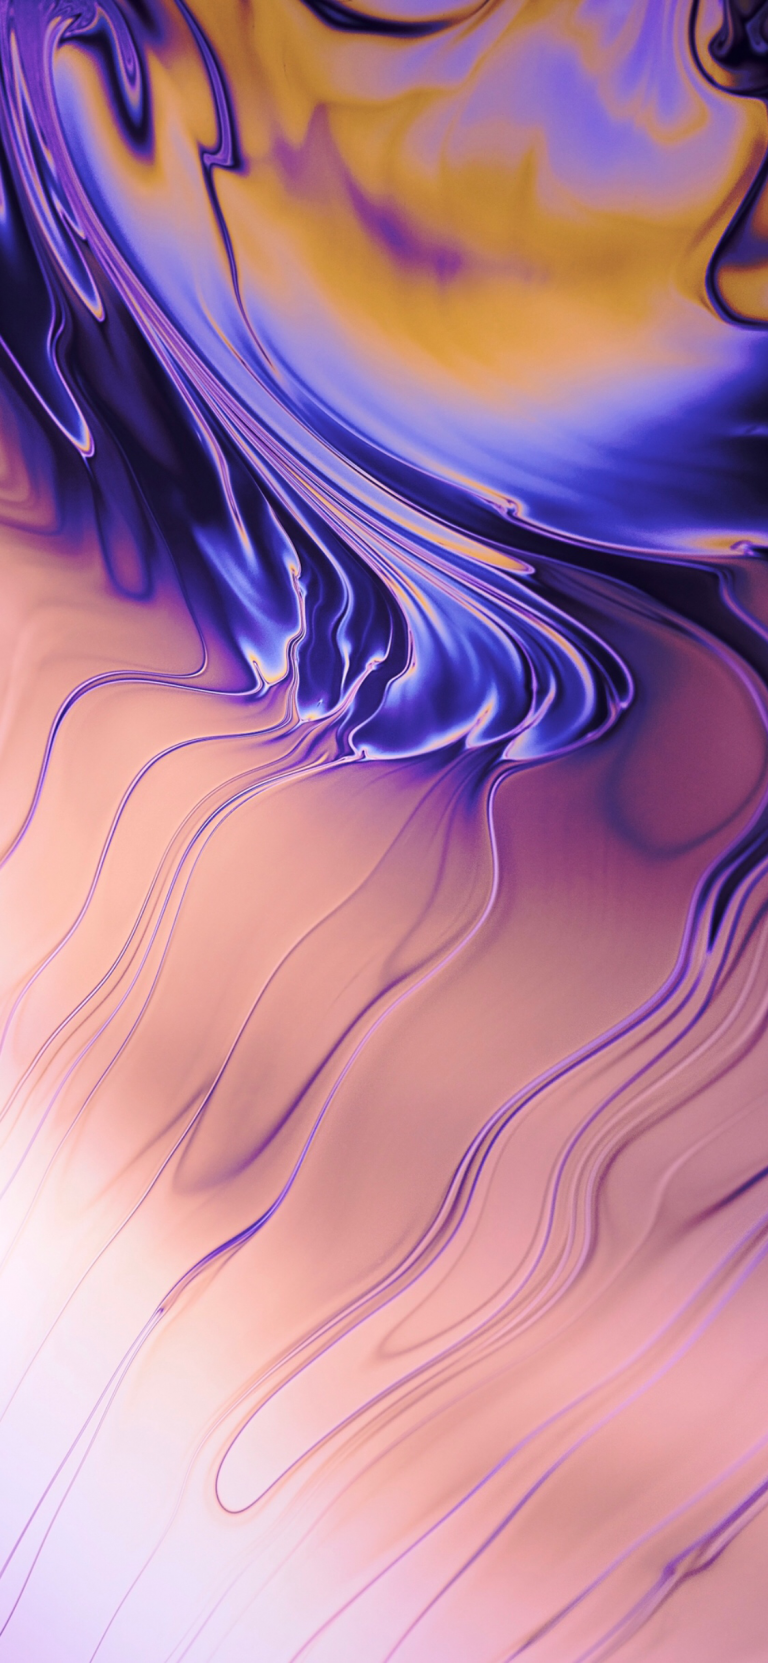 Every Macos Mojave Wallpaper For Iphone Fondos Para Iphone